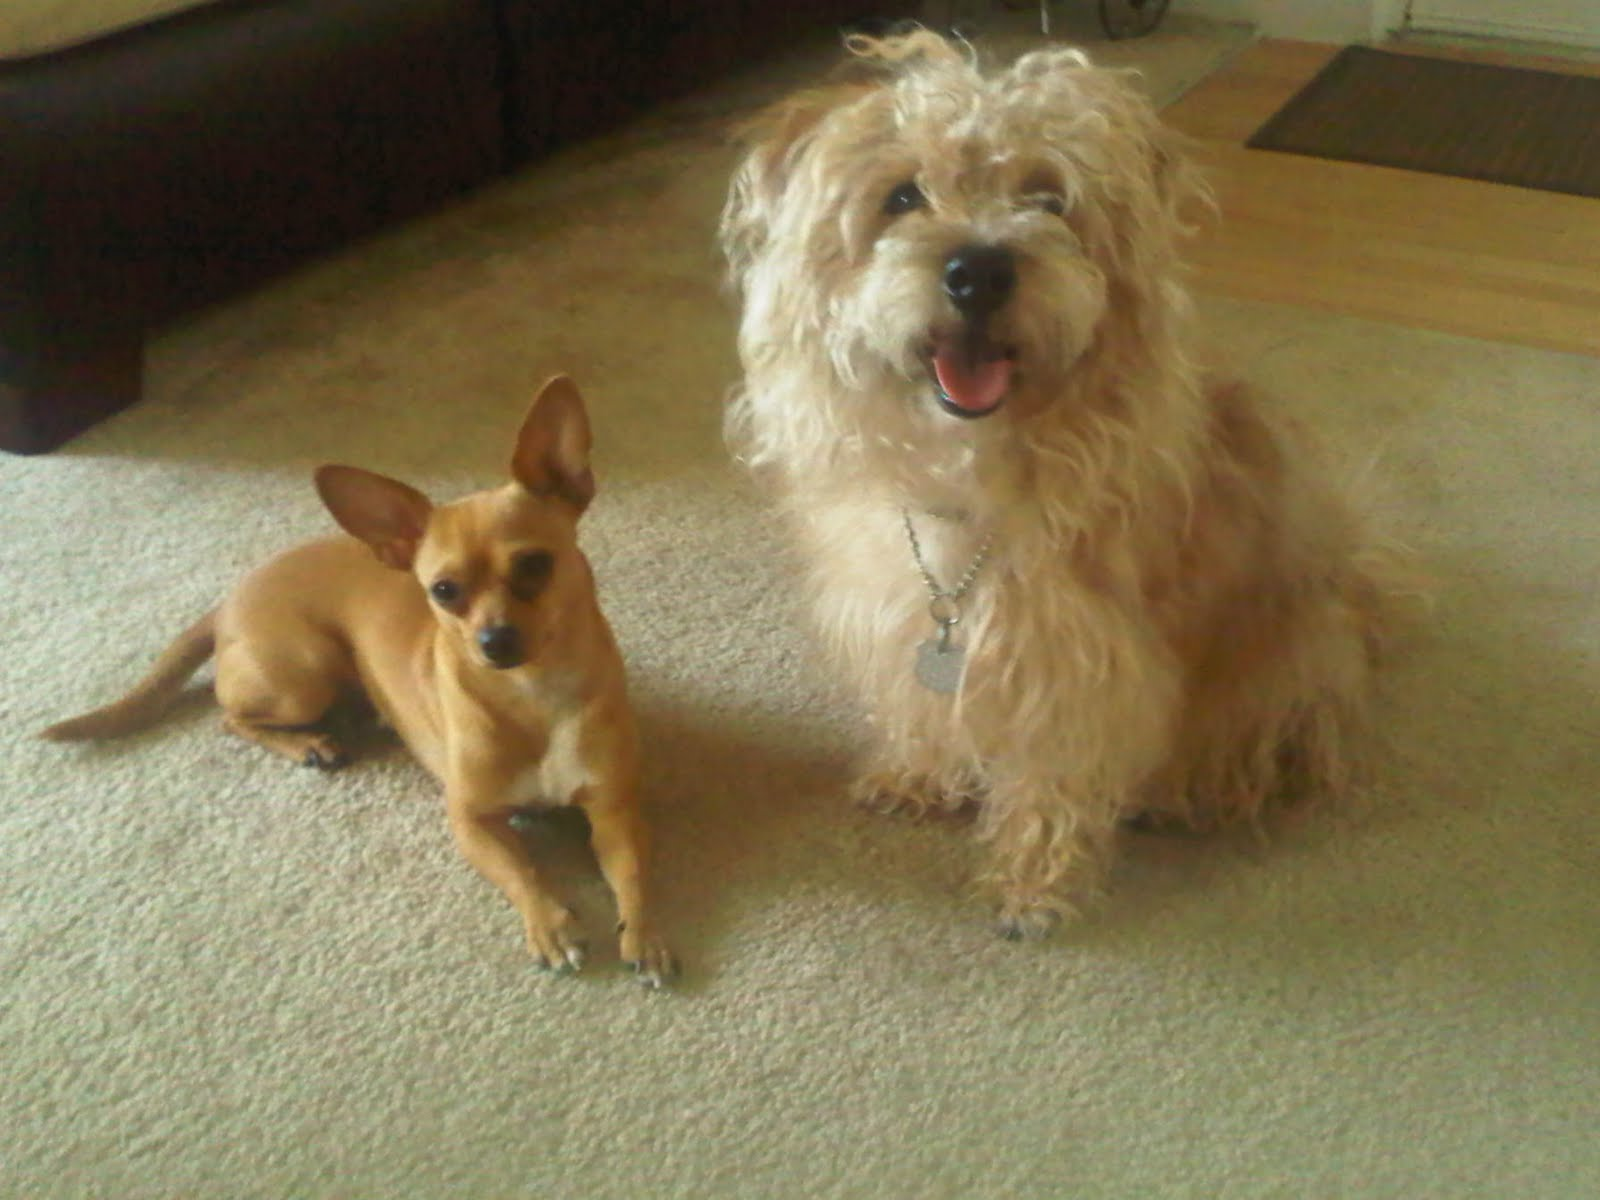 Animals in Baths: Abbie the Chihuahua and Gizmo the Poodle/Maltese Mix